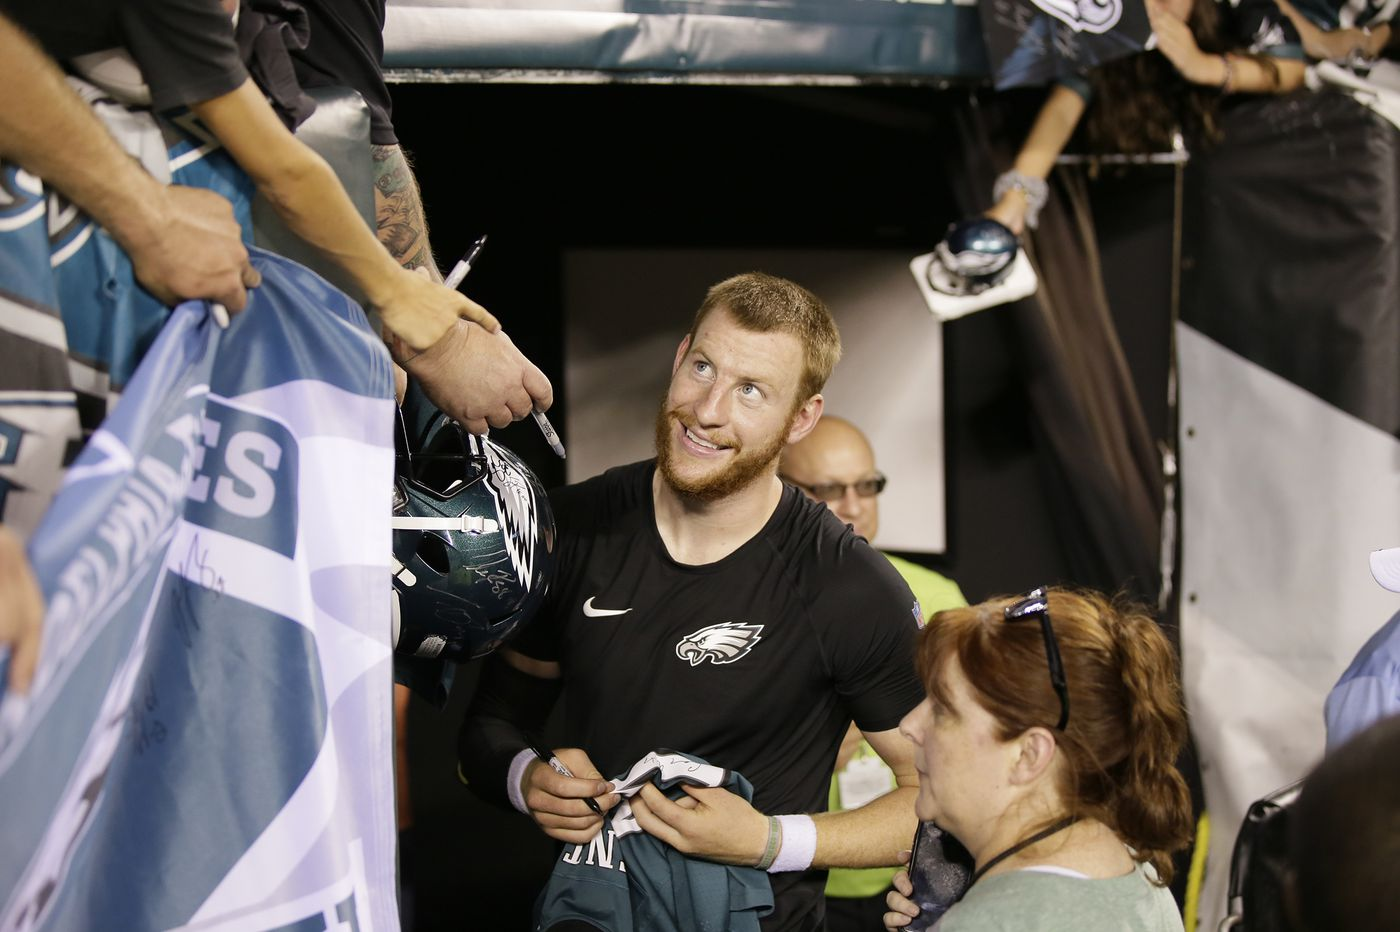 The Eagles' preseason arrives: for some players it's a milestone, for others, just a bother